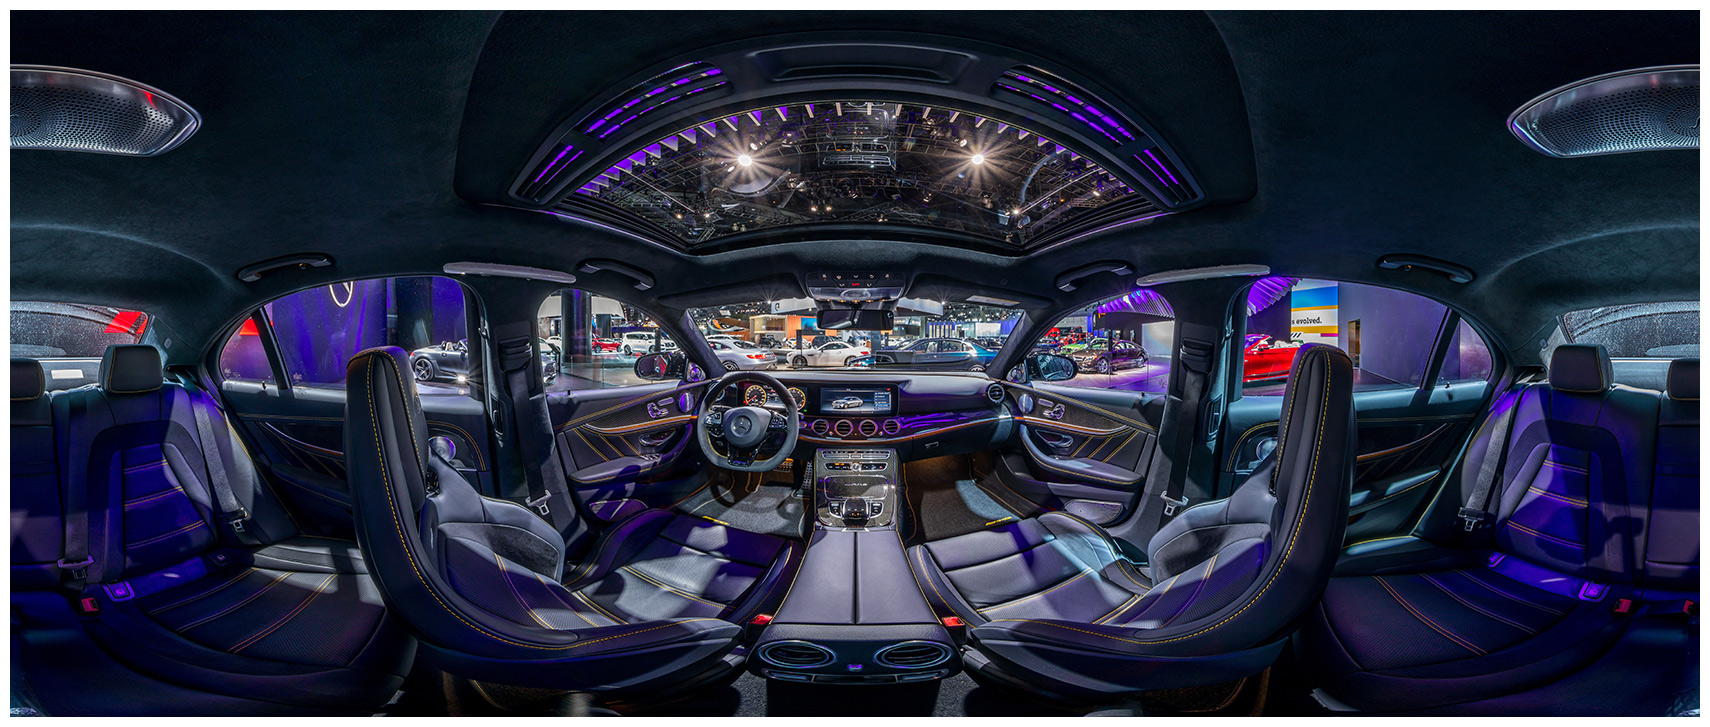 mercedes-benz-E63-interior-360-panoramic